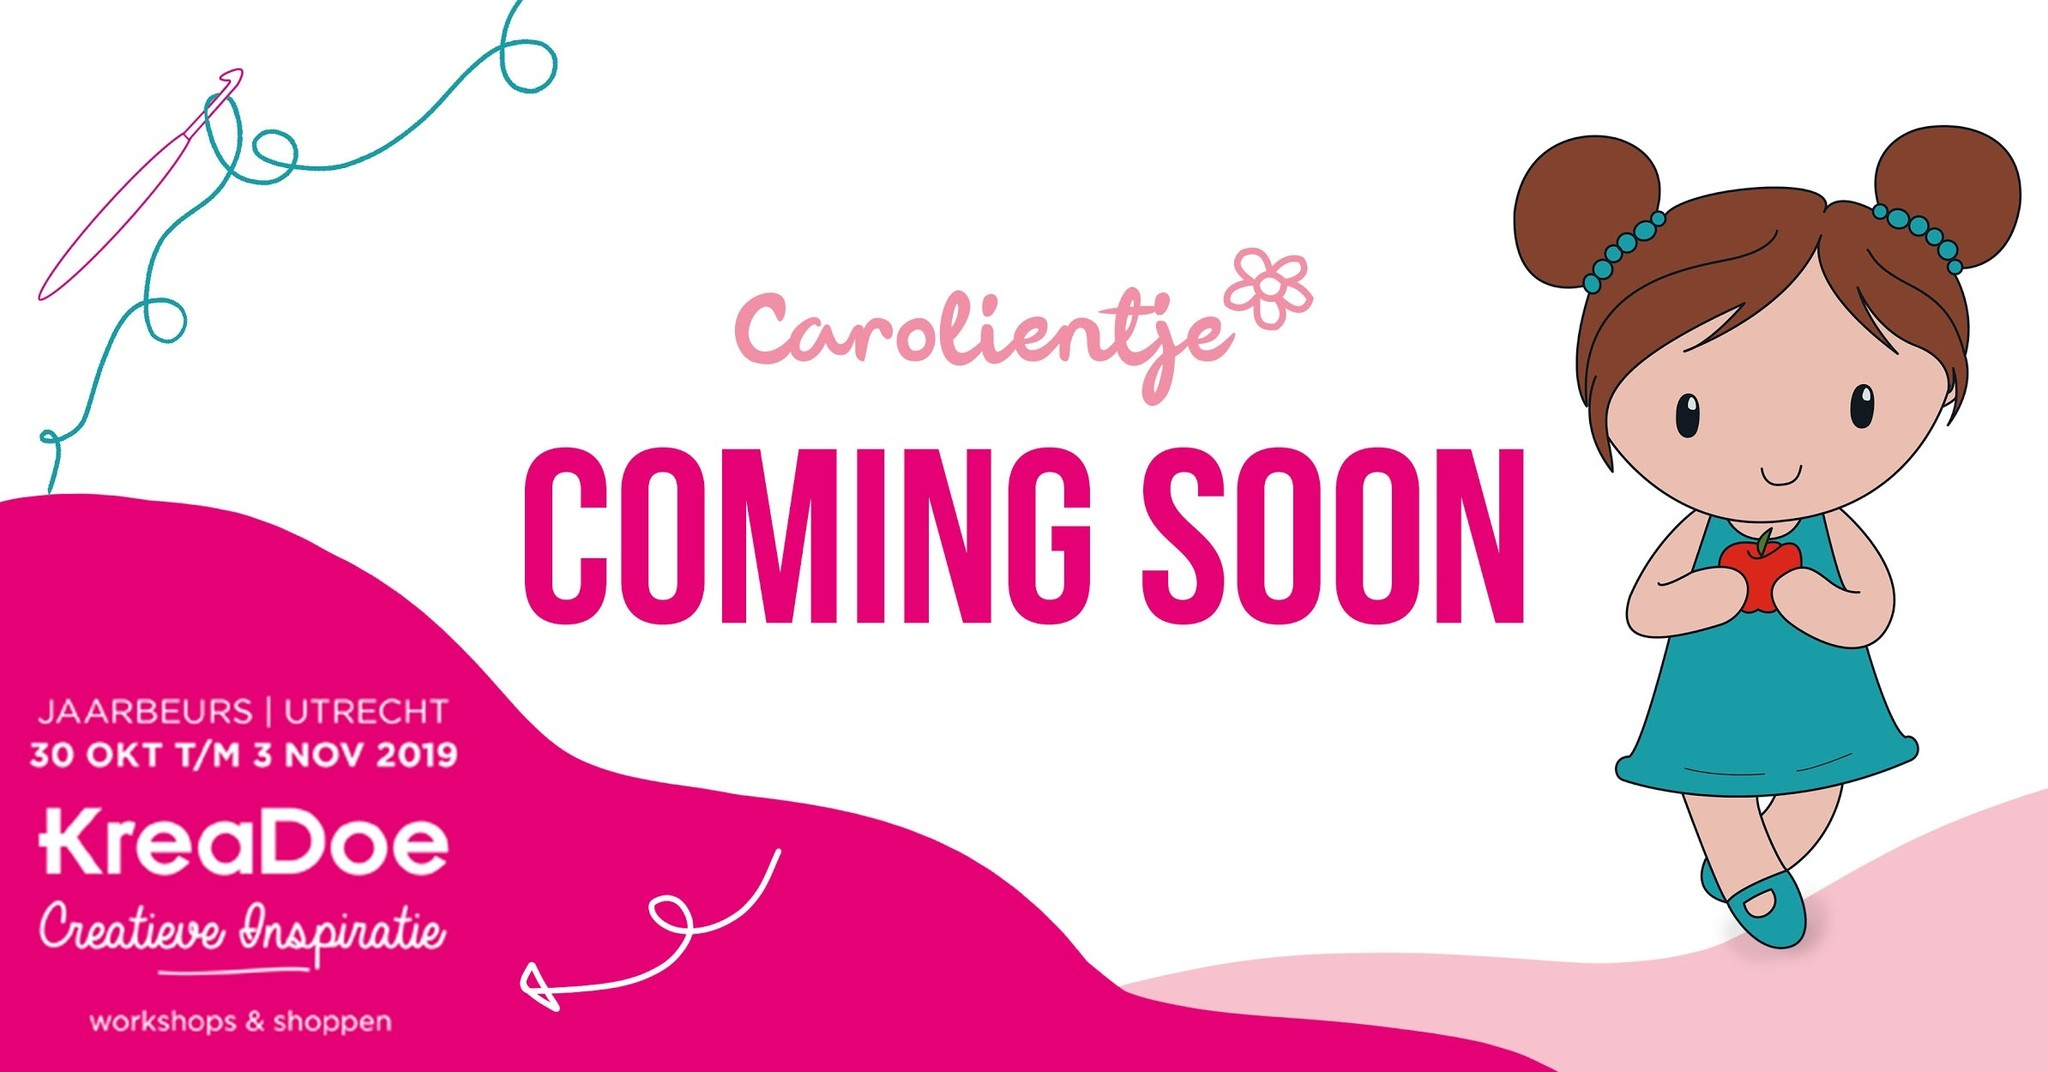 Coming Soon: Carolientje